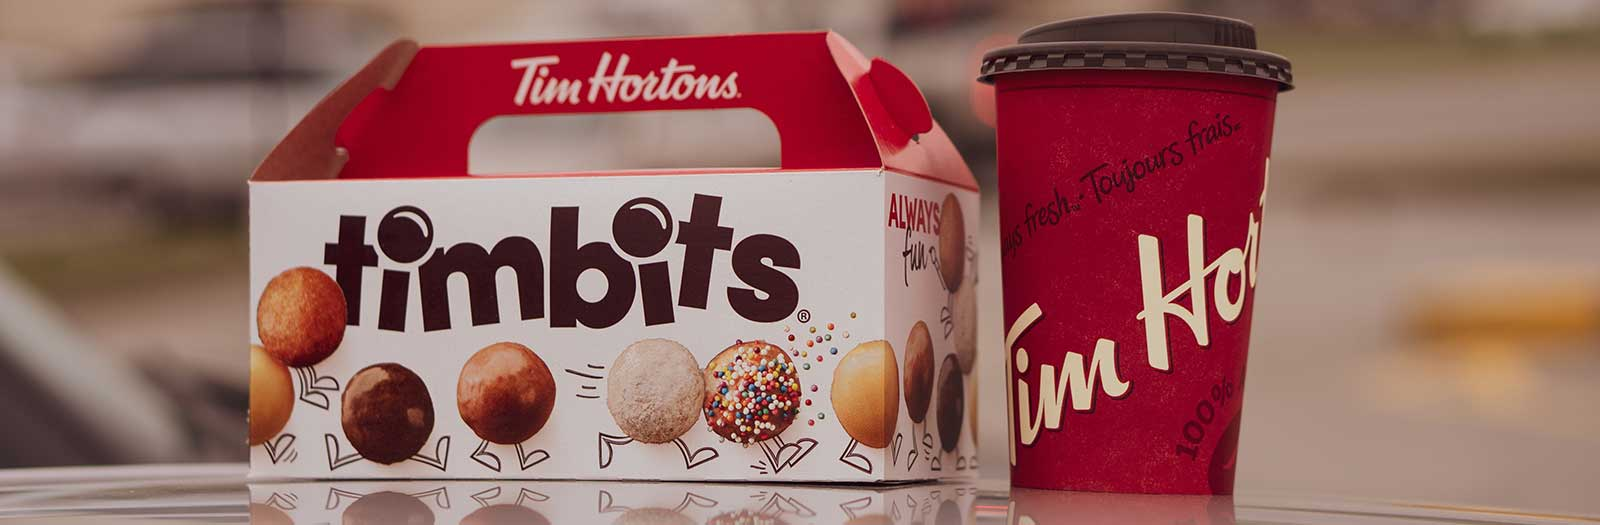 photo of a box of Tim Hortons timbits and a cup of Tim Hortons coffee